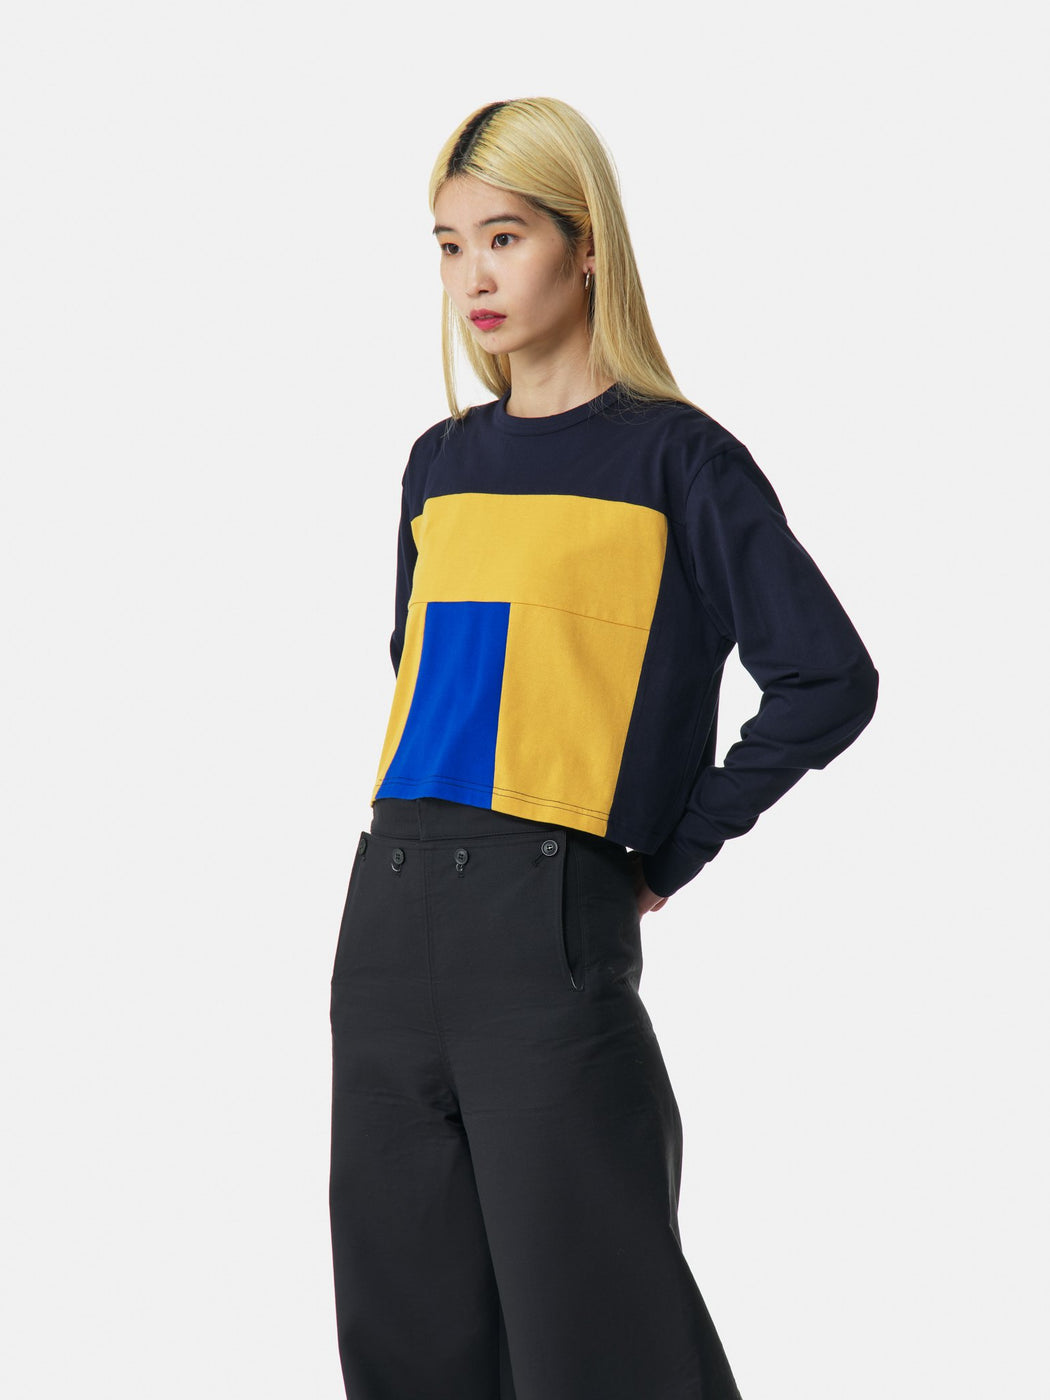 ALOYE Color Blocks Women's Long Sleeve Wide T-shirt Navy